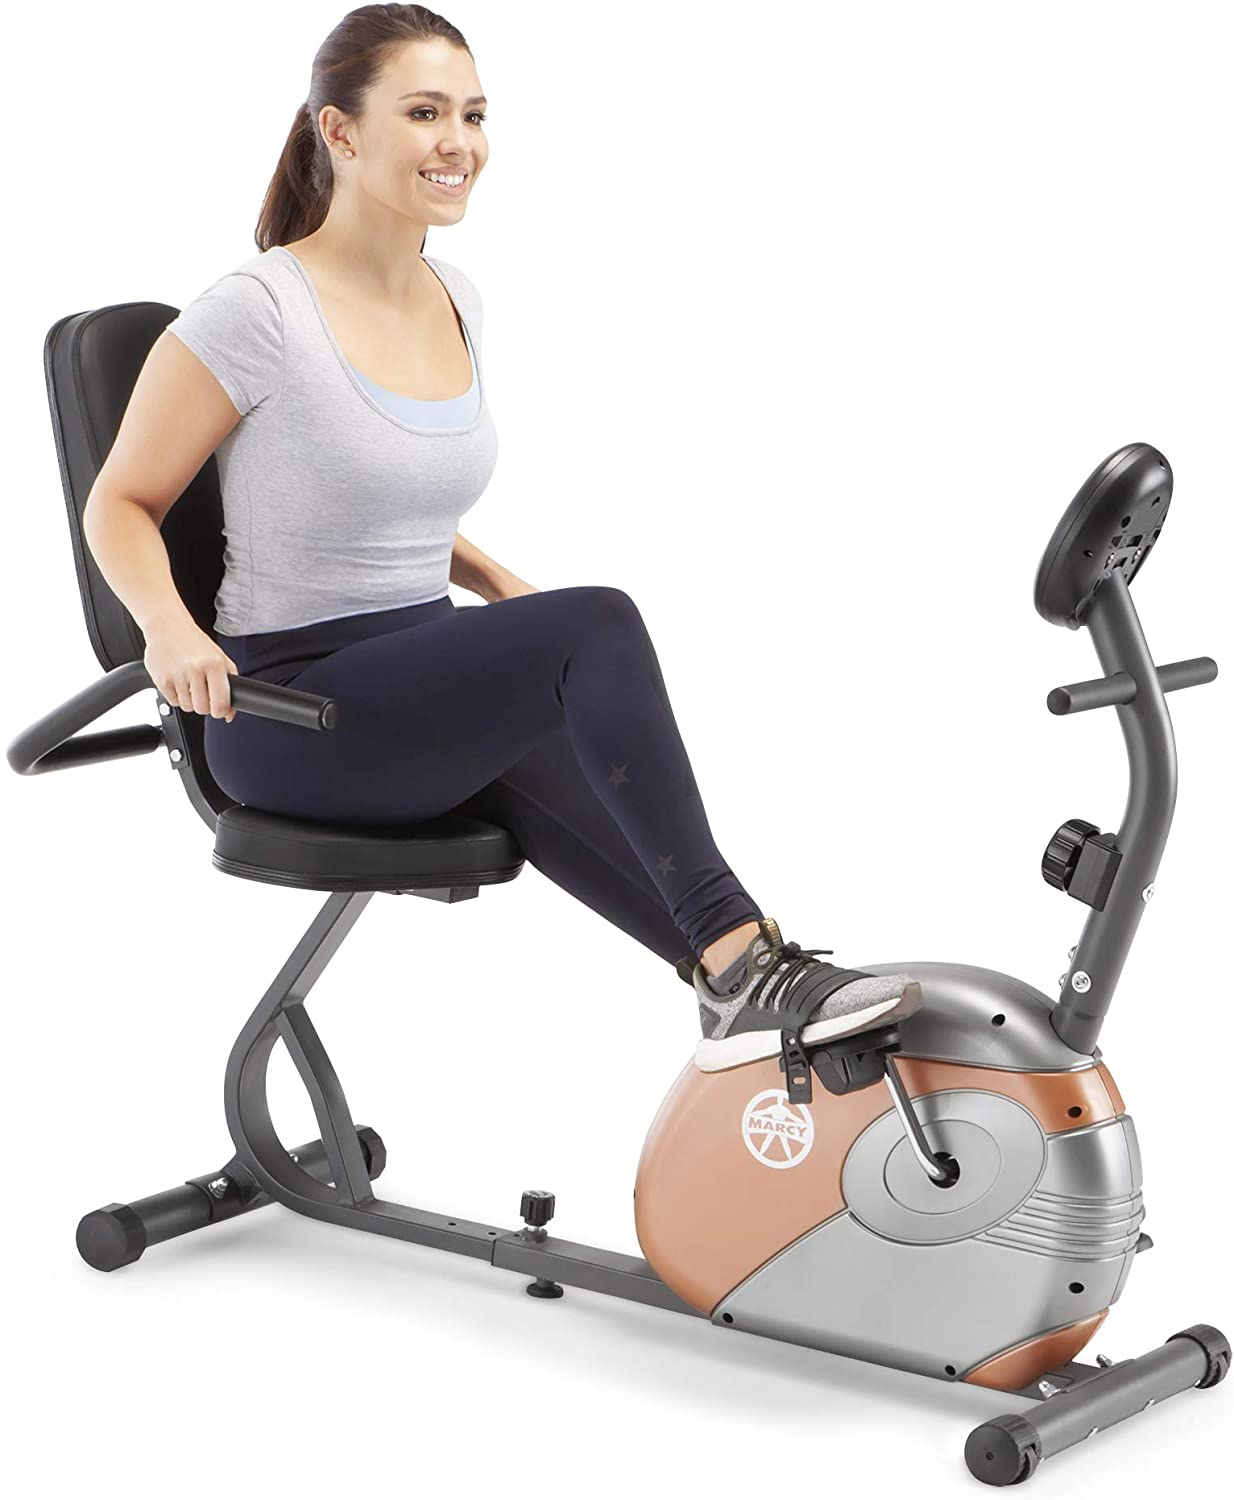 5 Best Exercise Bike For Seniors For More SAFE Workout 2020 5